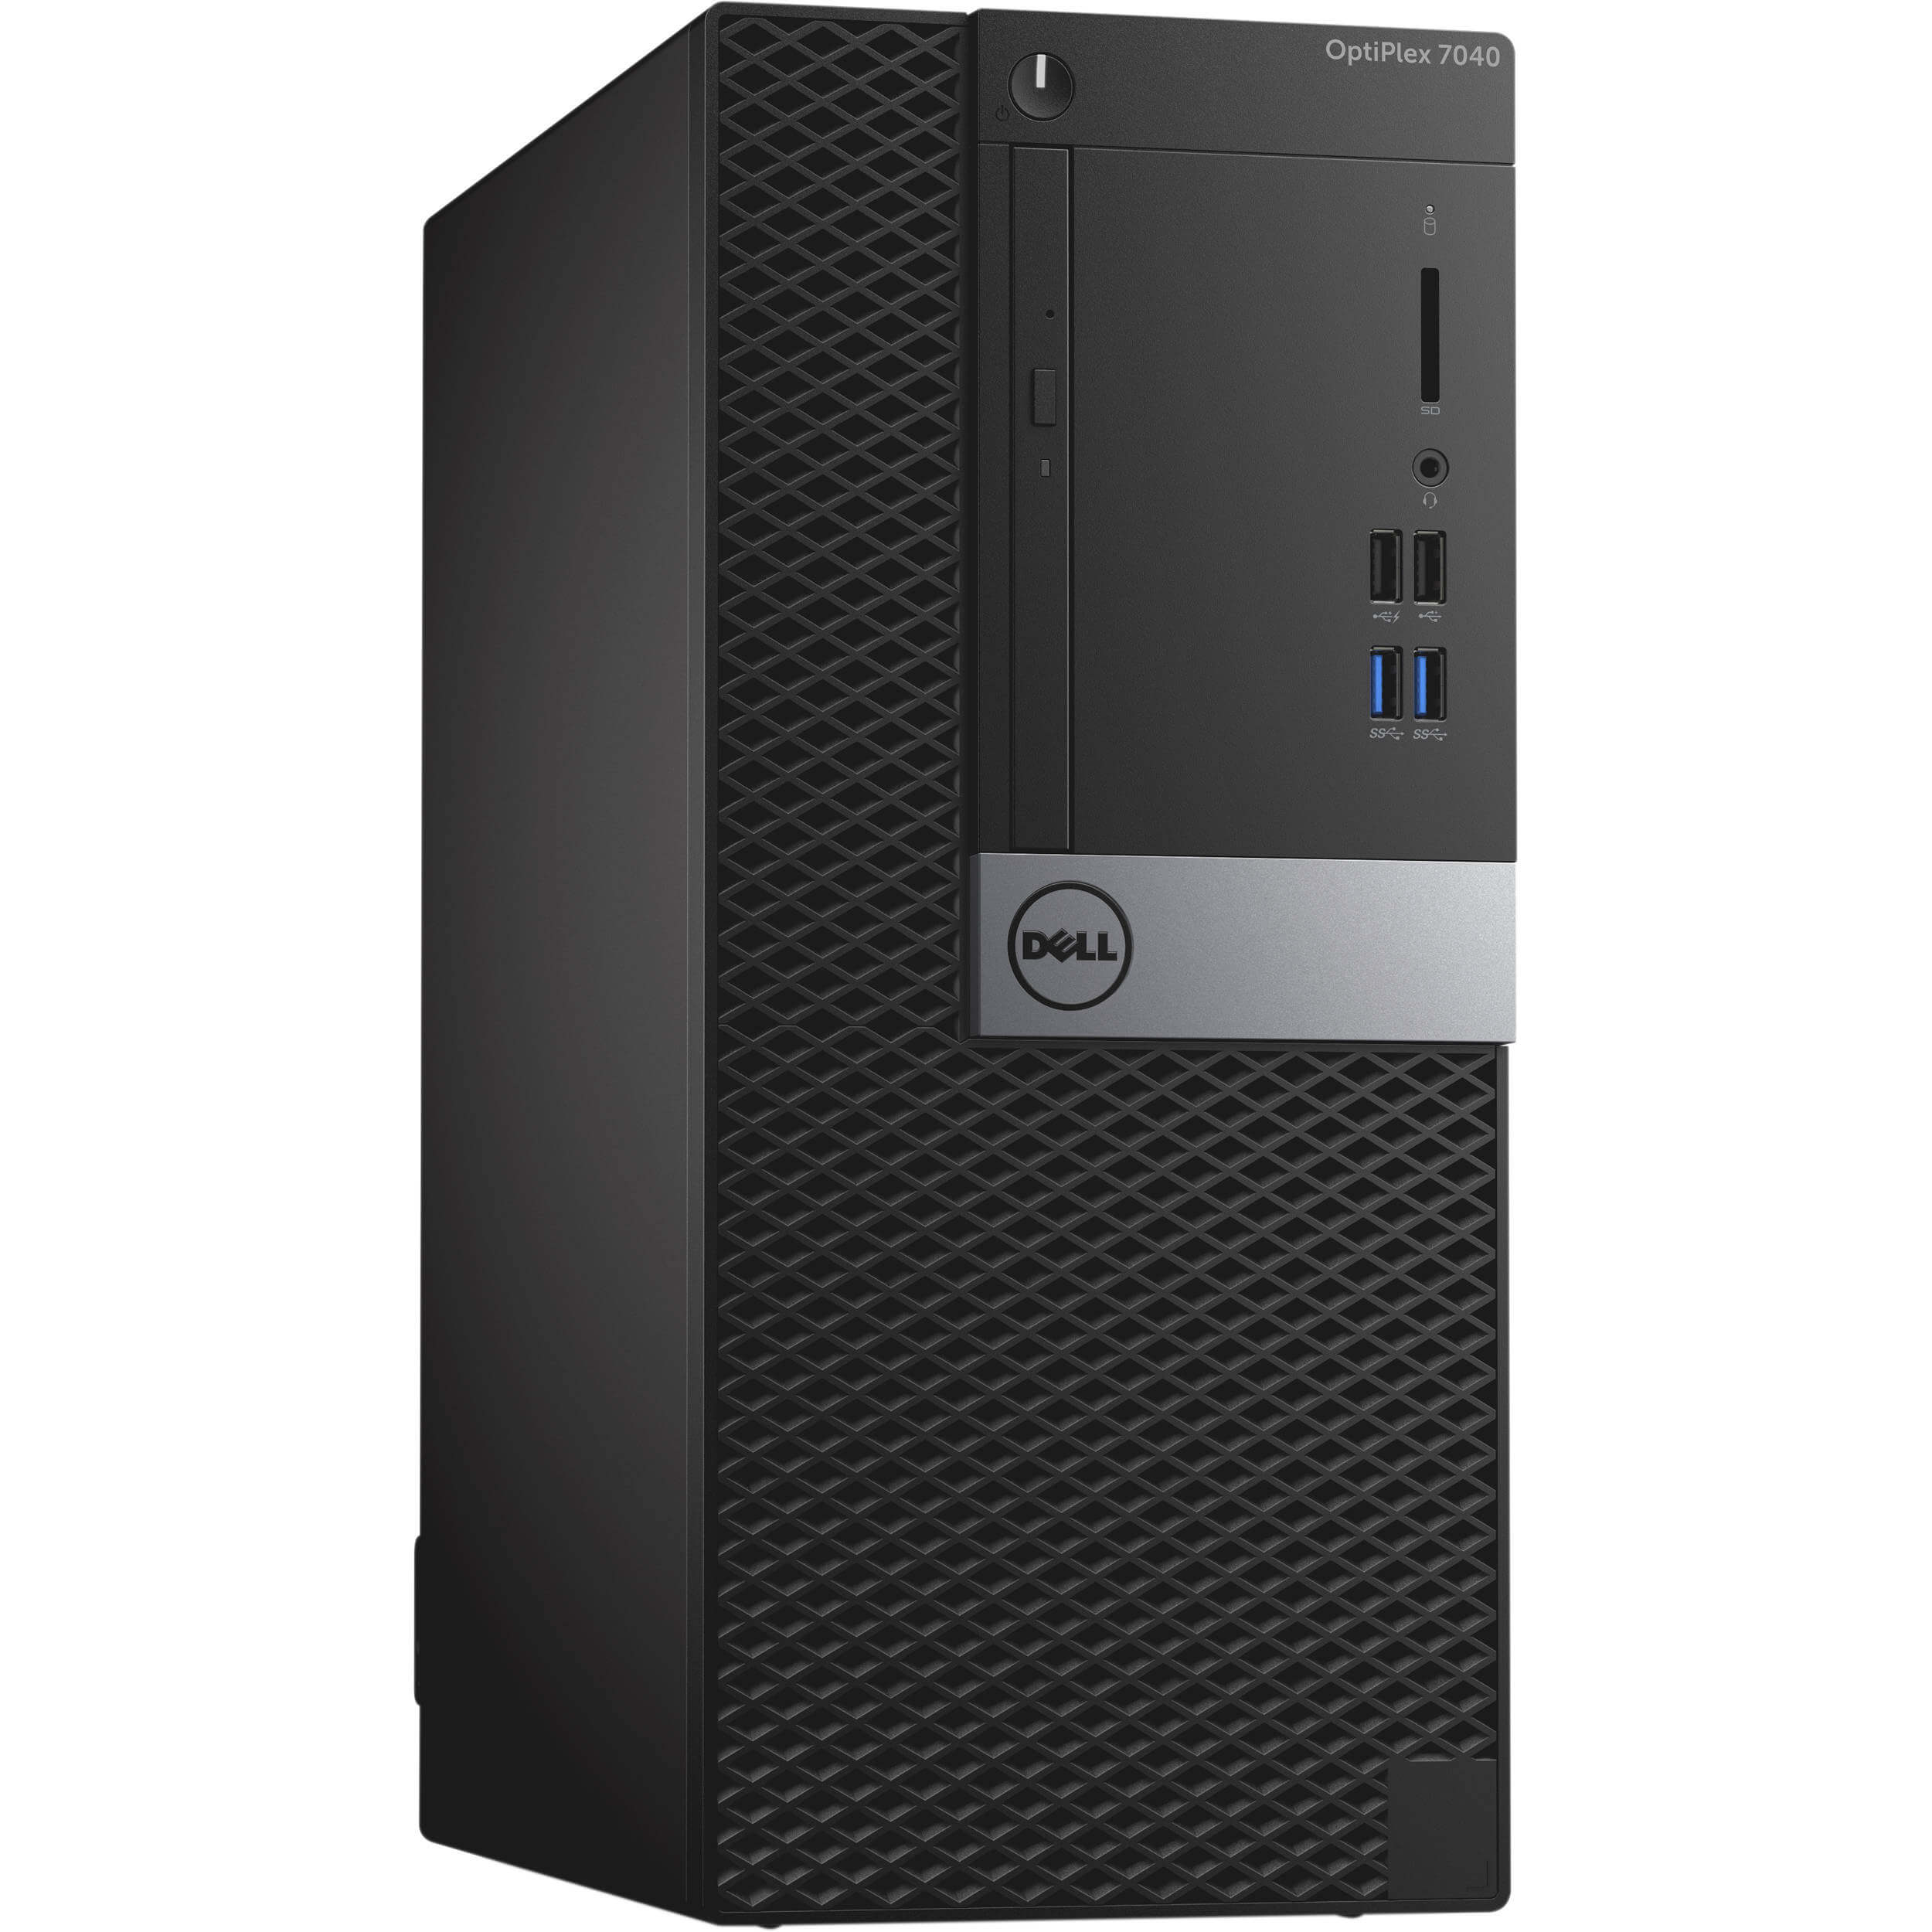 DELL 7040 MINI TOWER I5-6500 3.2 / 8192 MB DDR4 / 480 GB SSD NOVE + 500 GB / DVD-RW / WINDOWS 10 PRO